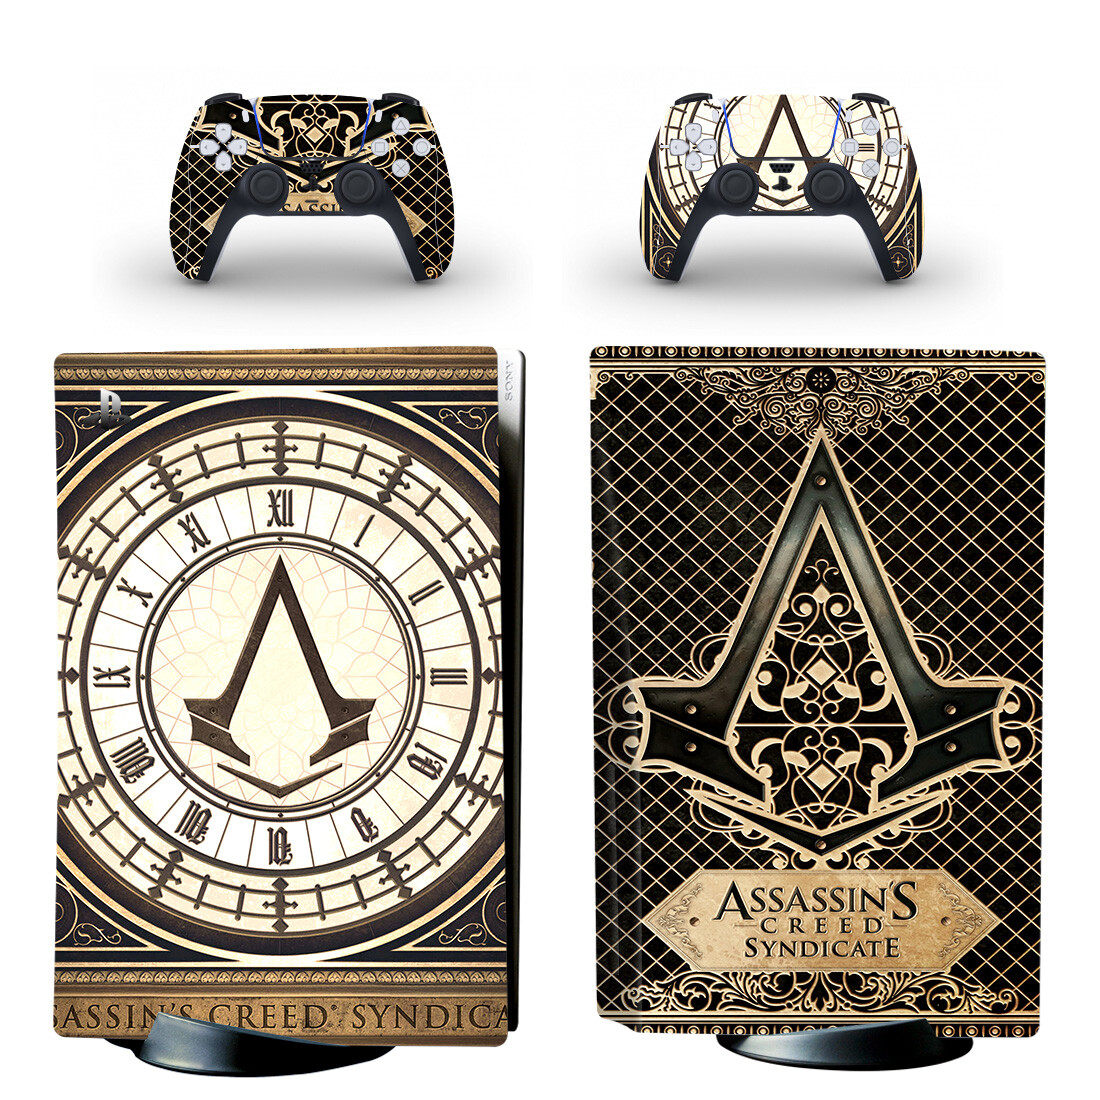 Assassin's Creed Syndicate Skin Sticker For PS5 Skin And Controllers